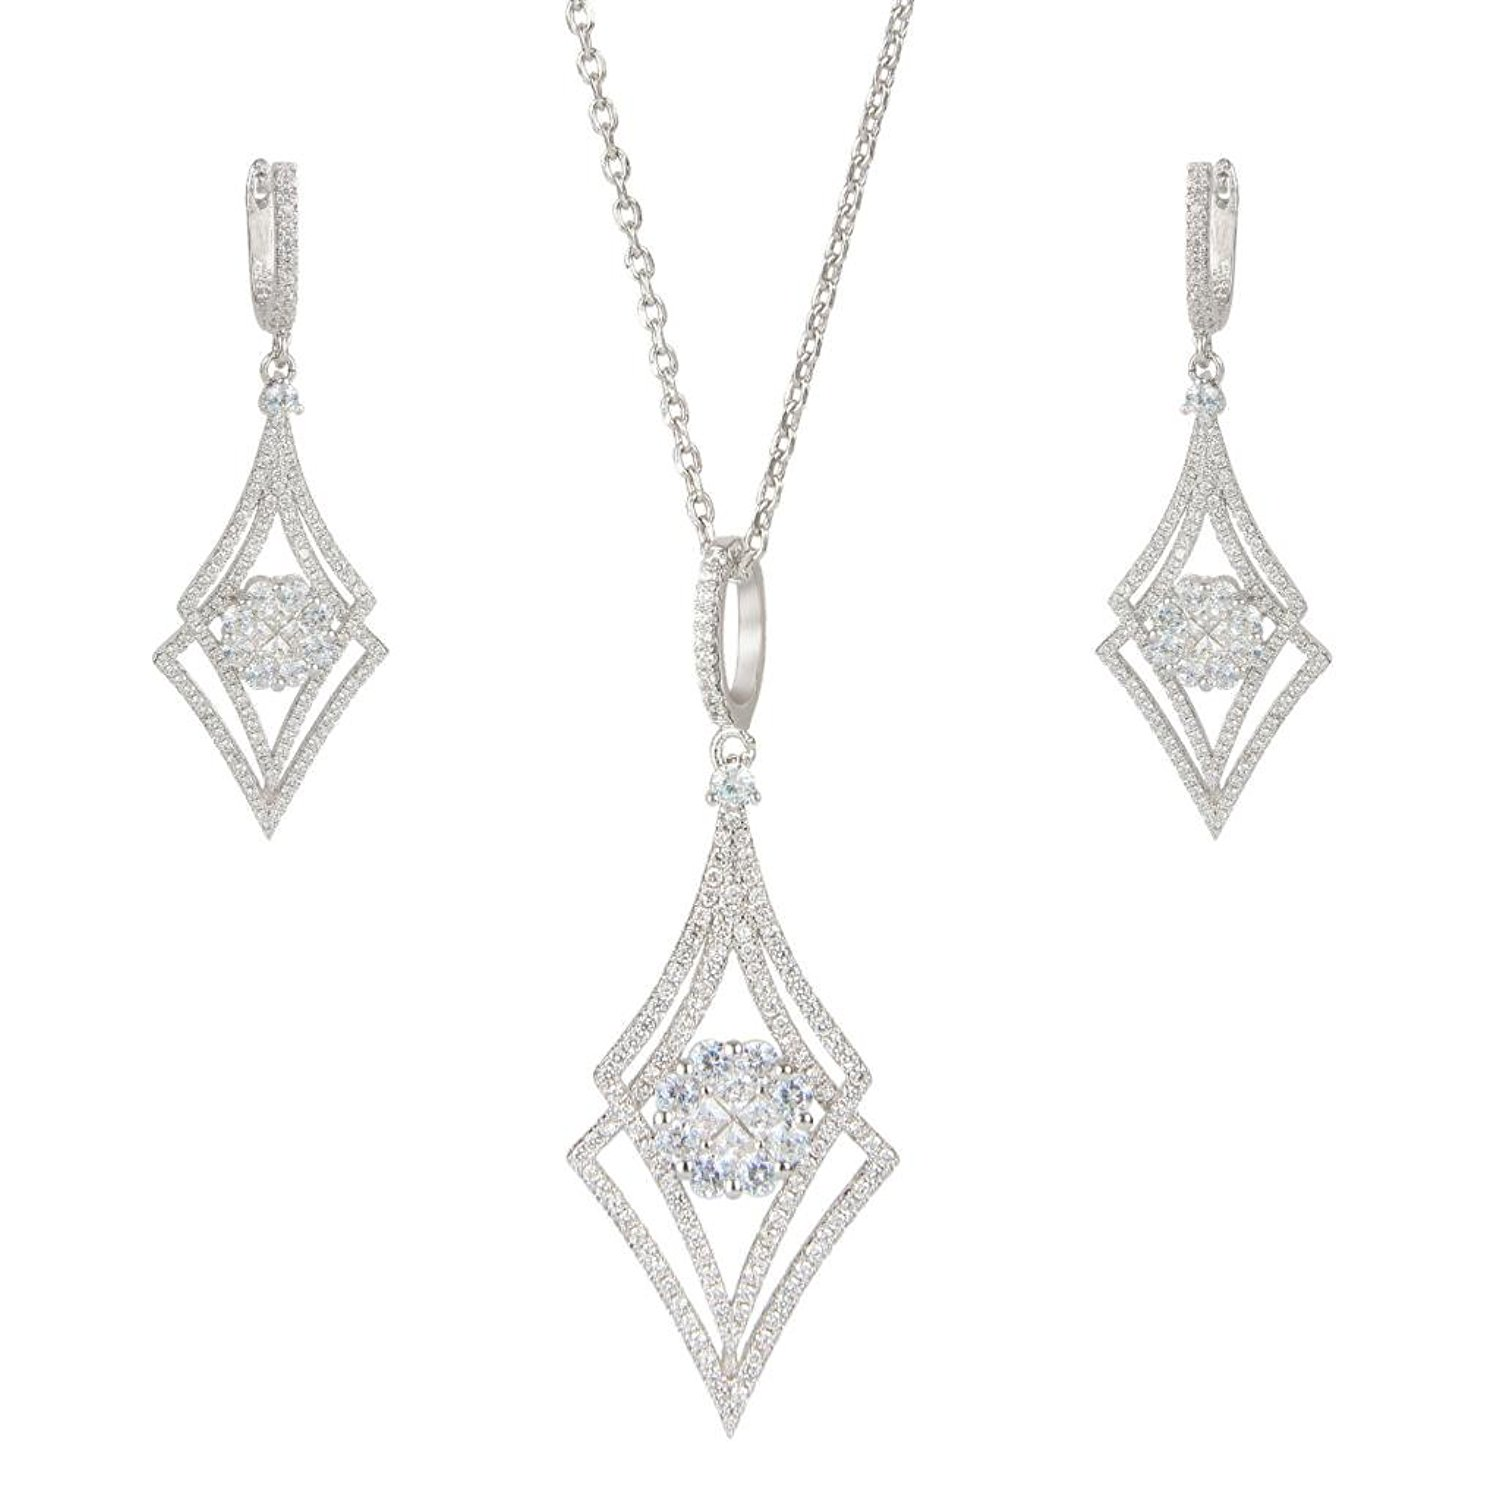 EVER FAITH® Silver-Tone Zircon Elegant Double Rhombus Shaped Pendant Necklace Earrings Set Clear